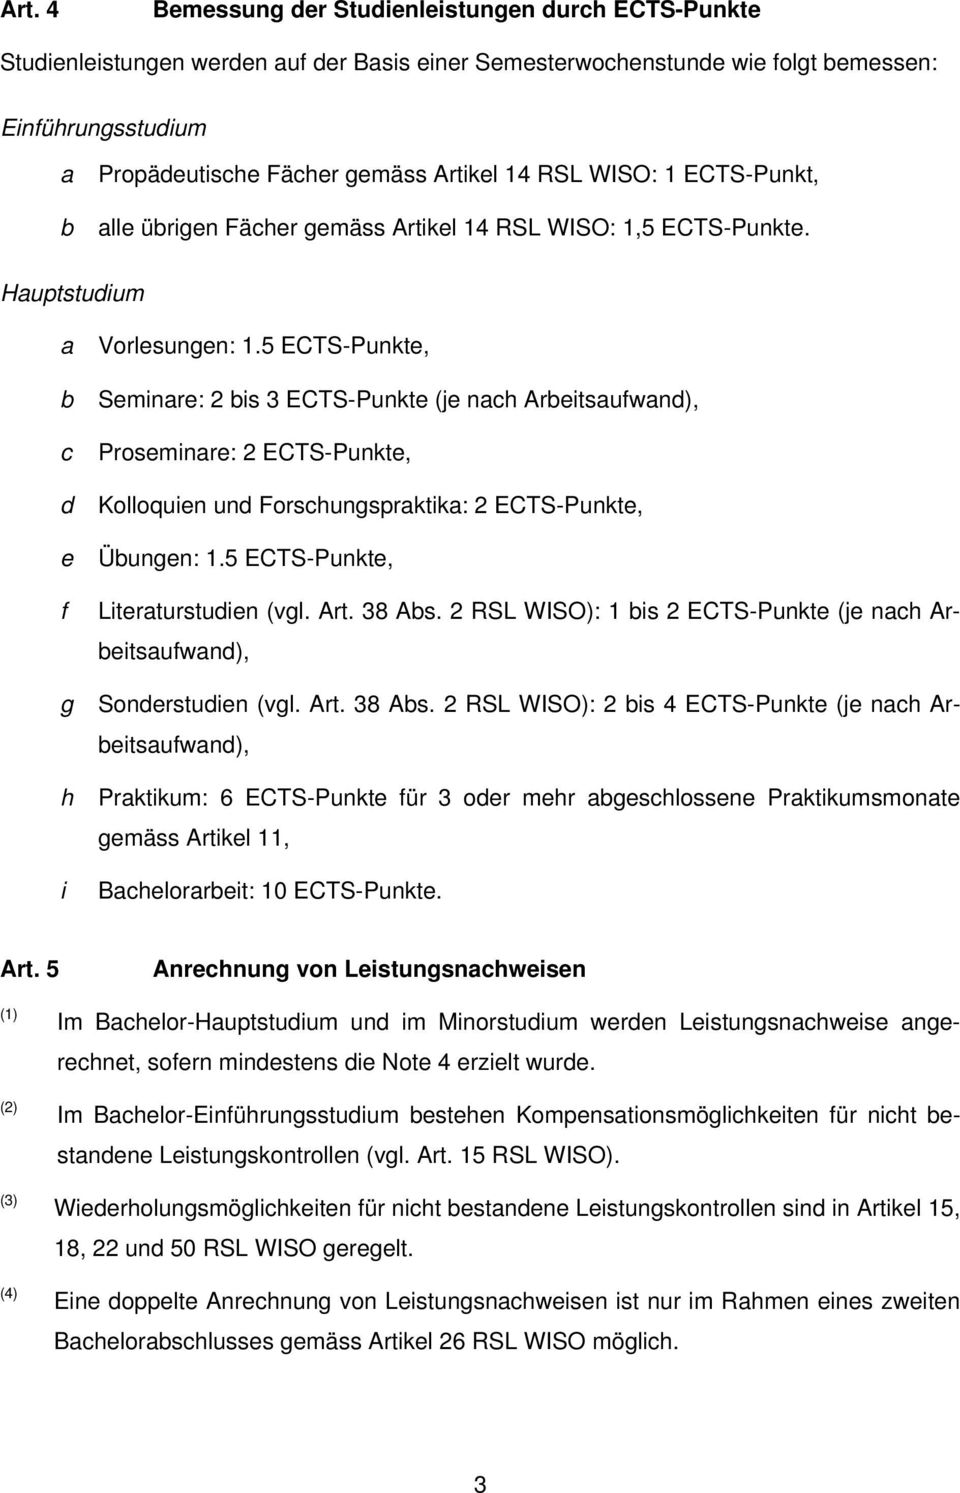 5 ECTS-Punkte, Seminre: 2 is 3 ECTS-Punkte (je nh Areitsufwn), Proseminre: 2 ECTS-Punkte, Kolloquien un Forshungsprktik: 2 ECTS-Punkte, Üungen: 1.5 ECTS-Punkte, Literturstuien (vgl. Art. 38 As.